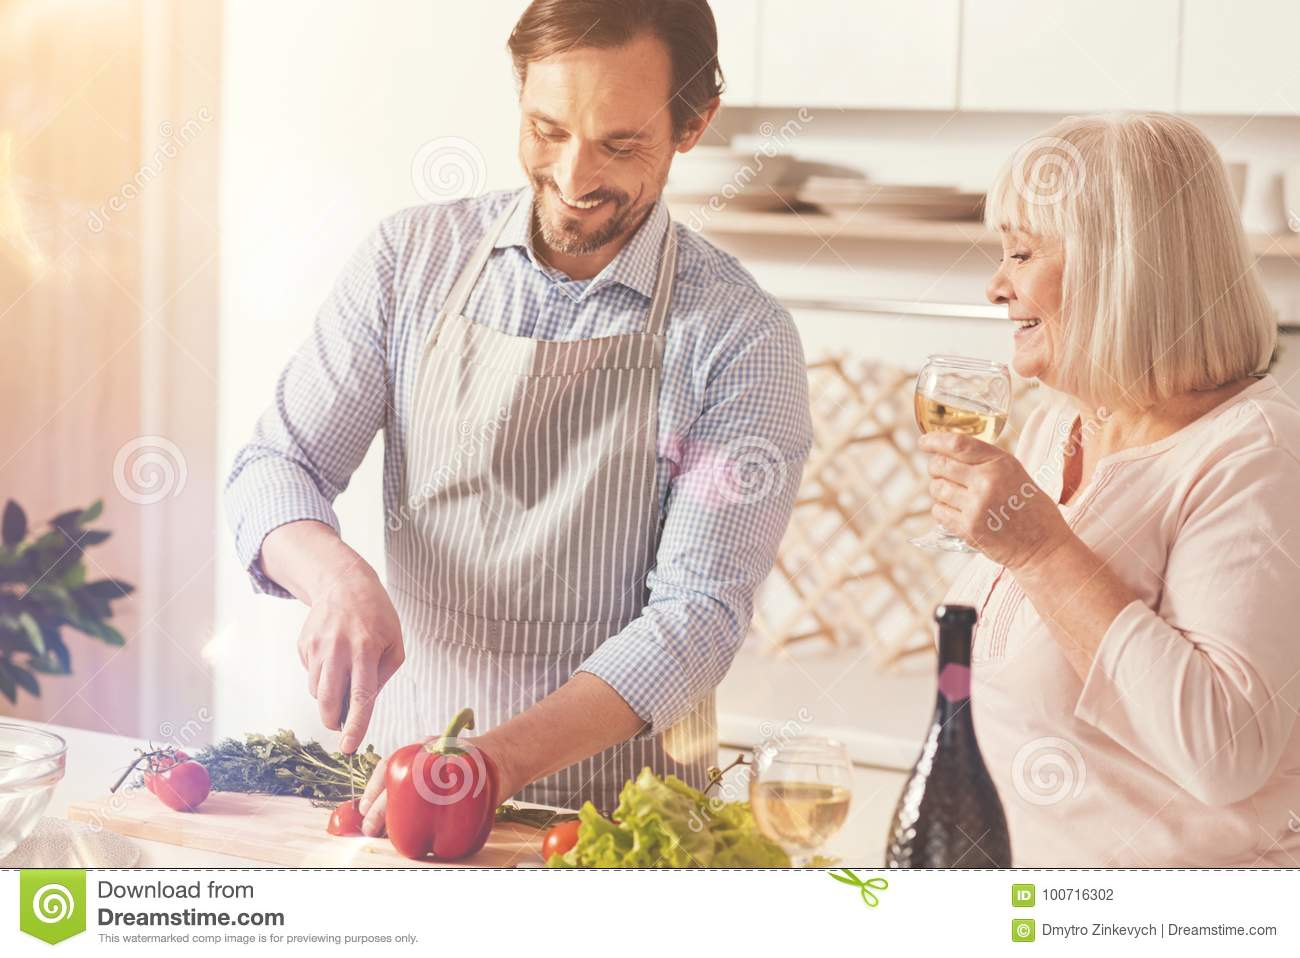 Cook with love. Cheerful smiling adult men wearing apron and cooking  vegetable salad while his aged mother drinking white wine